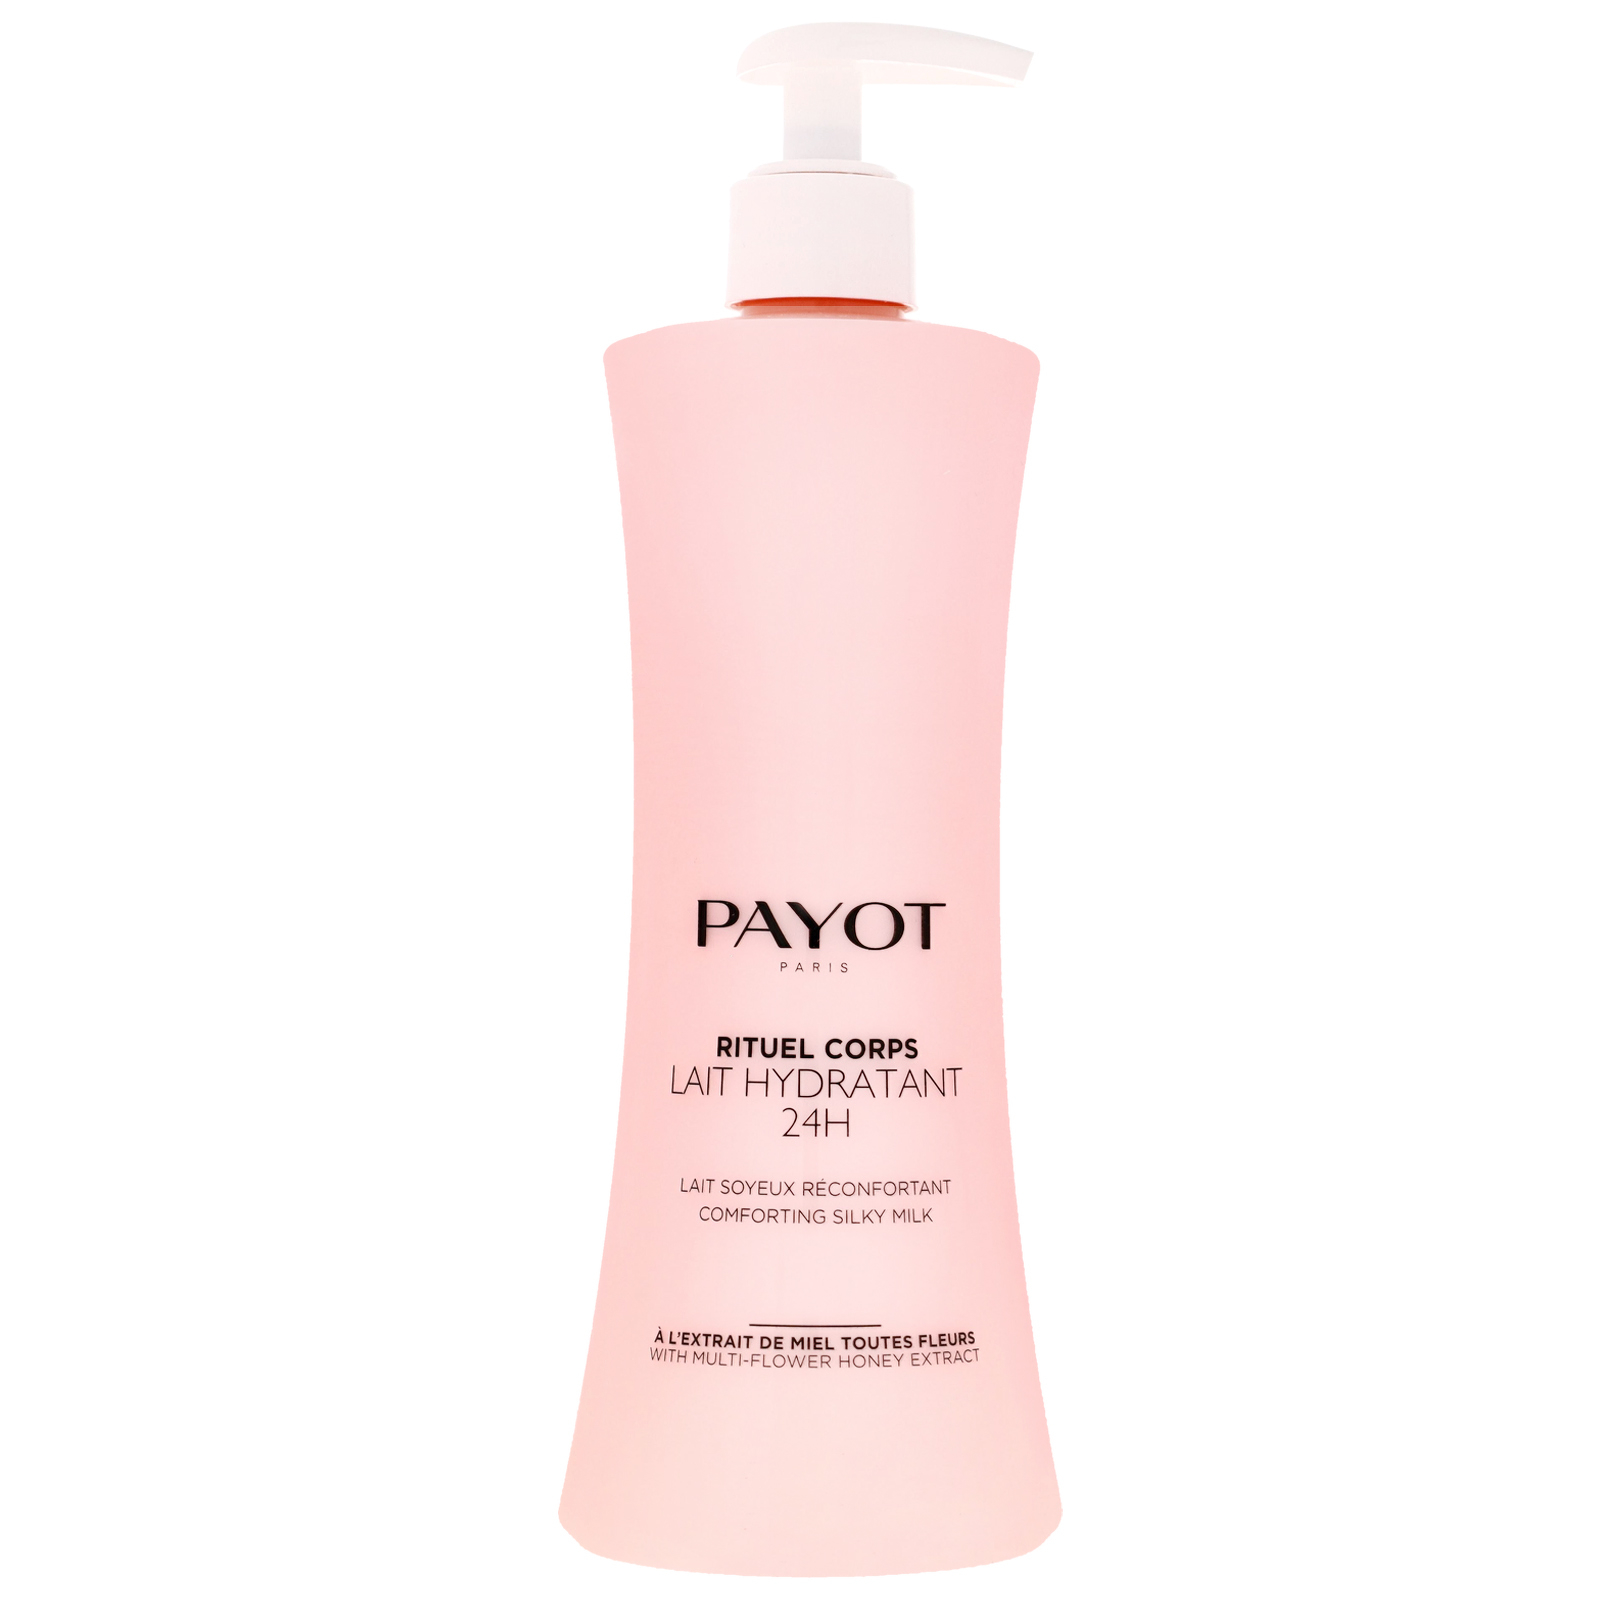 Payot Paris Moisturisation Hydra 24 Corps: Long-Lasting Moisturising Milk 400ml